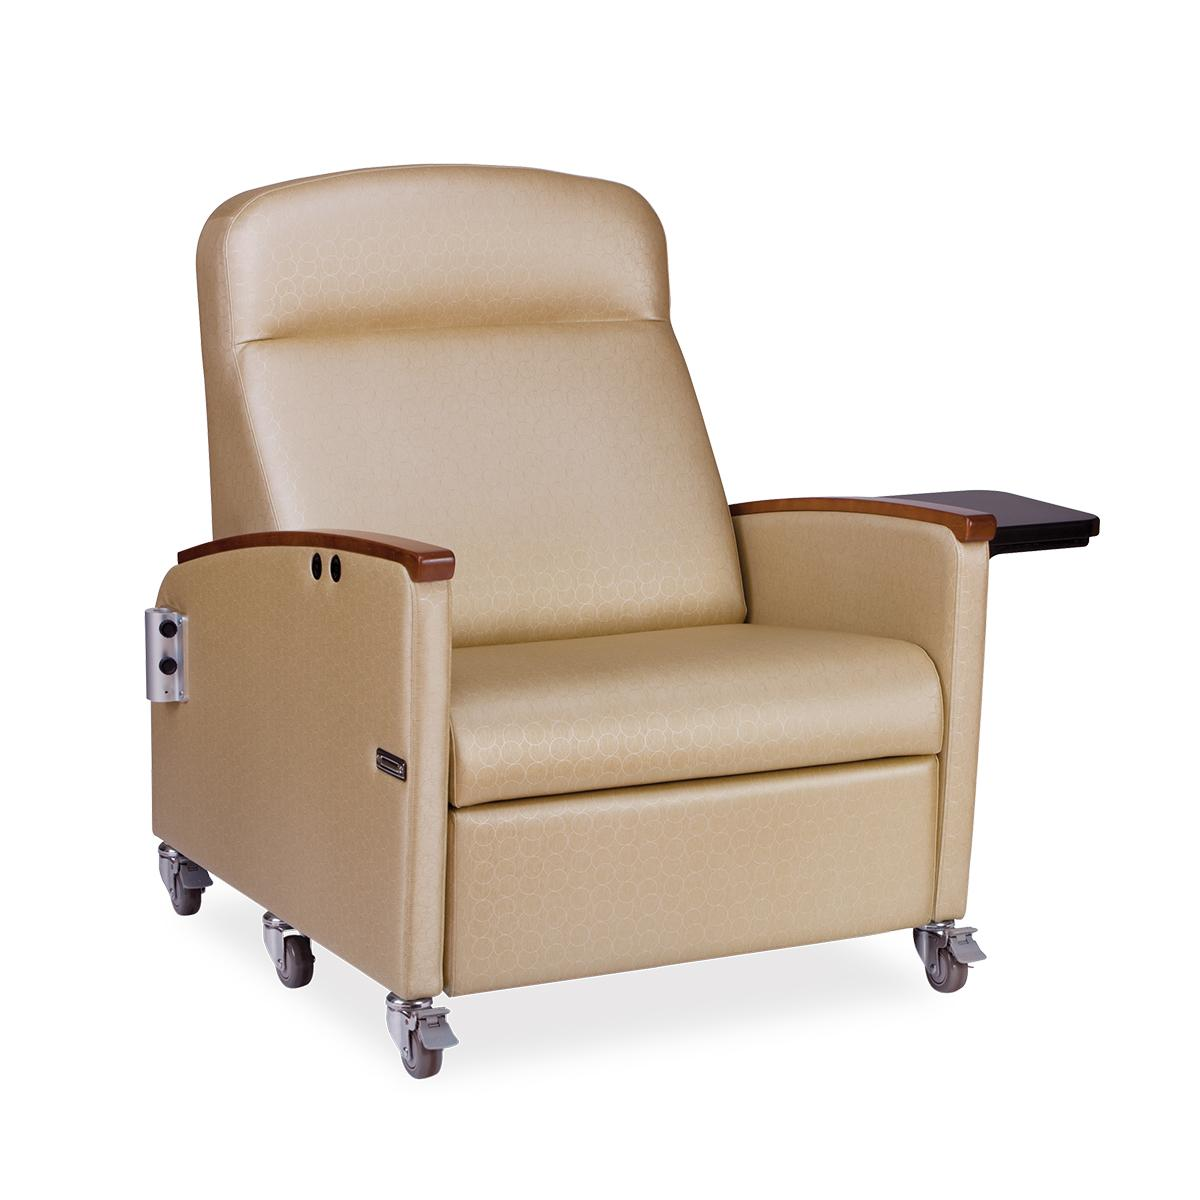 Hillrom Powered Bariatric Recliner, diagonal view